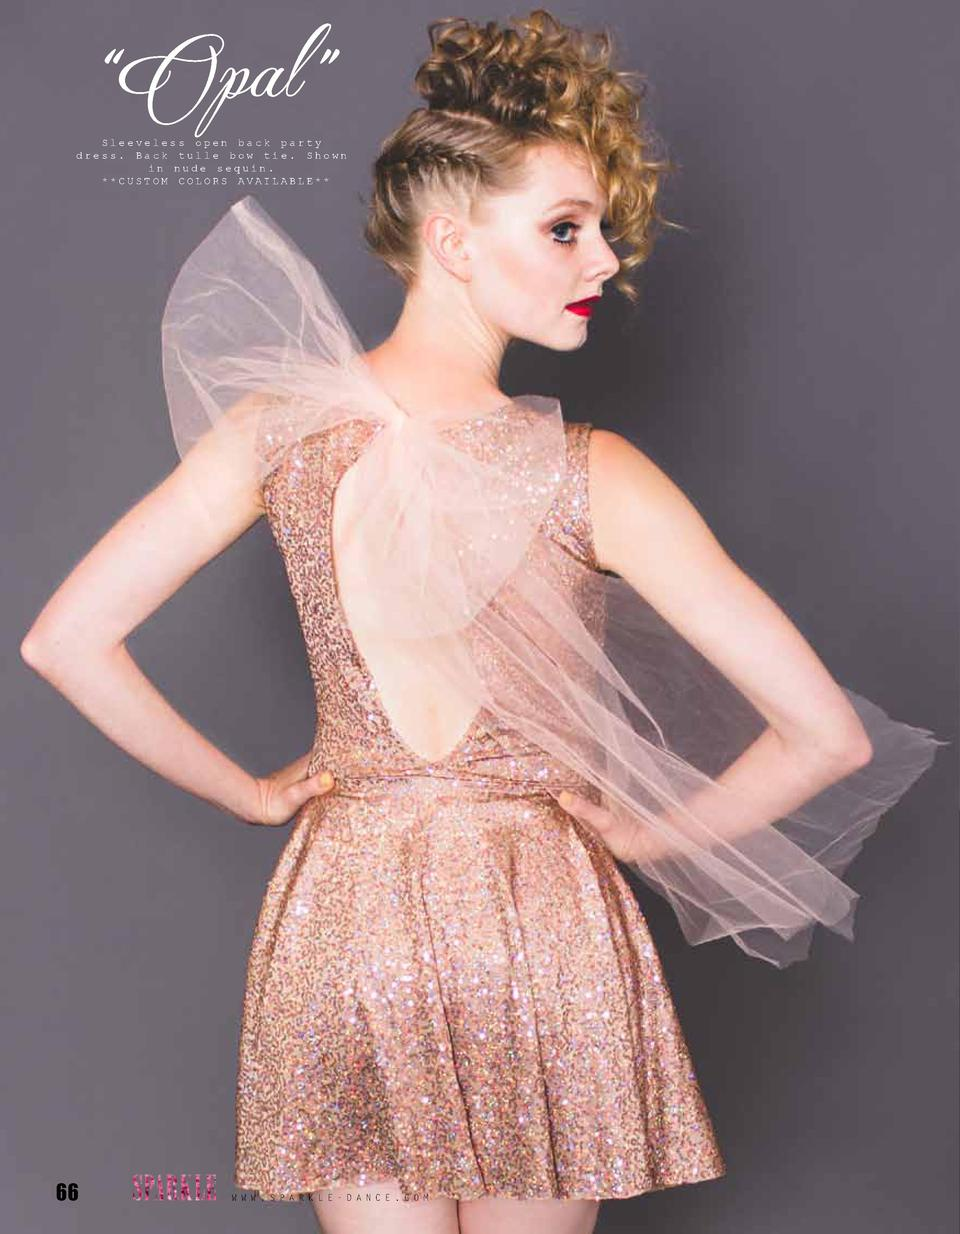 Opal     Sleeveless open back party dress. Back tulle bow tie. Shown in nude sequin.   CUSTOM COLORS AVAILABLE    66  W...